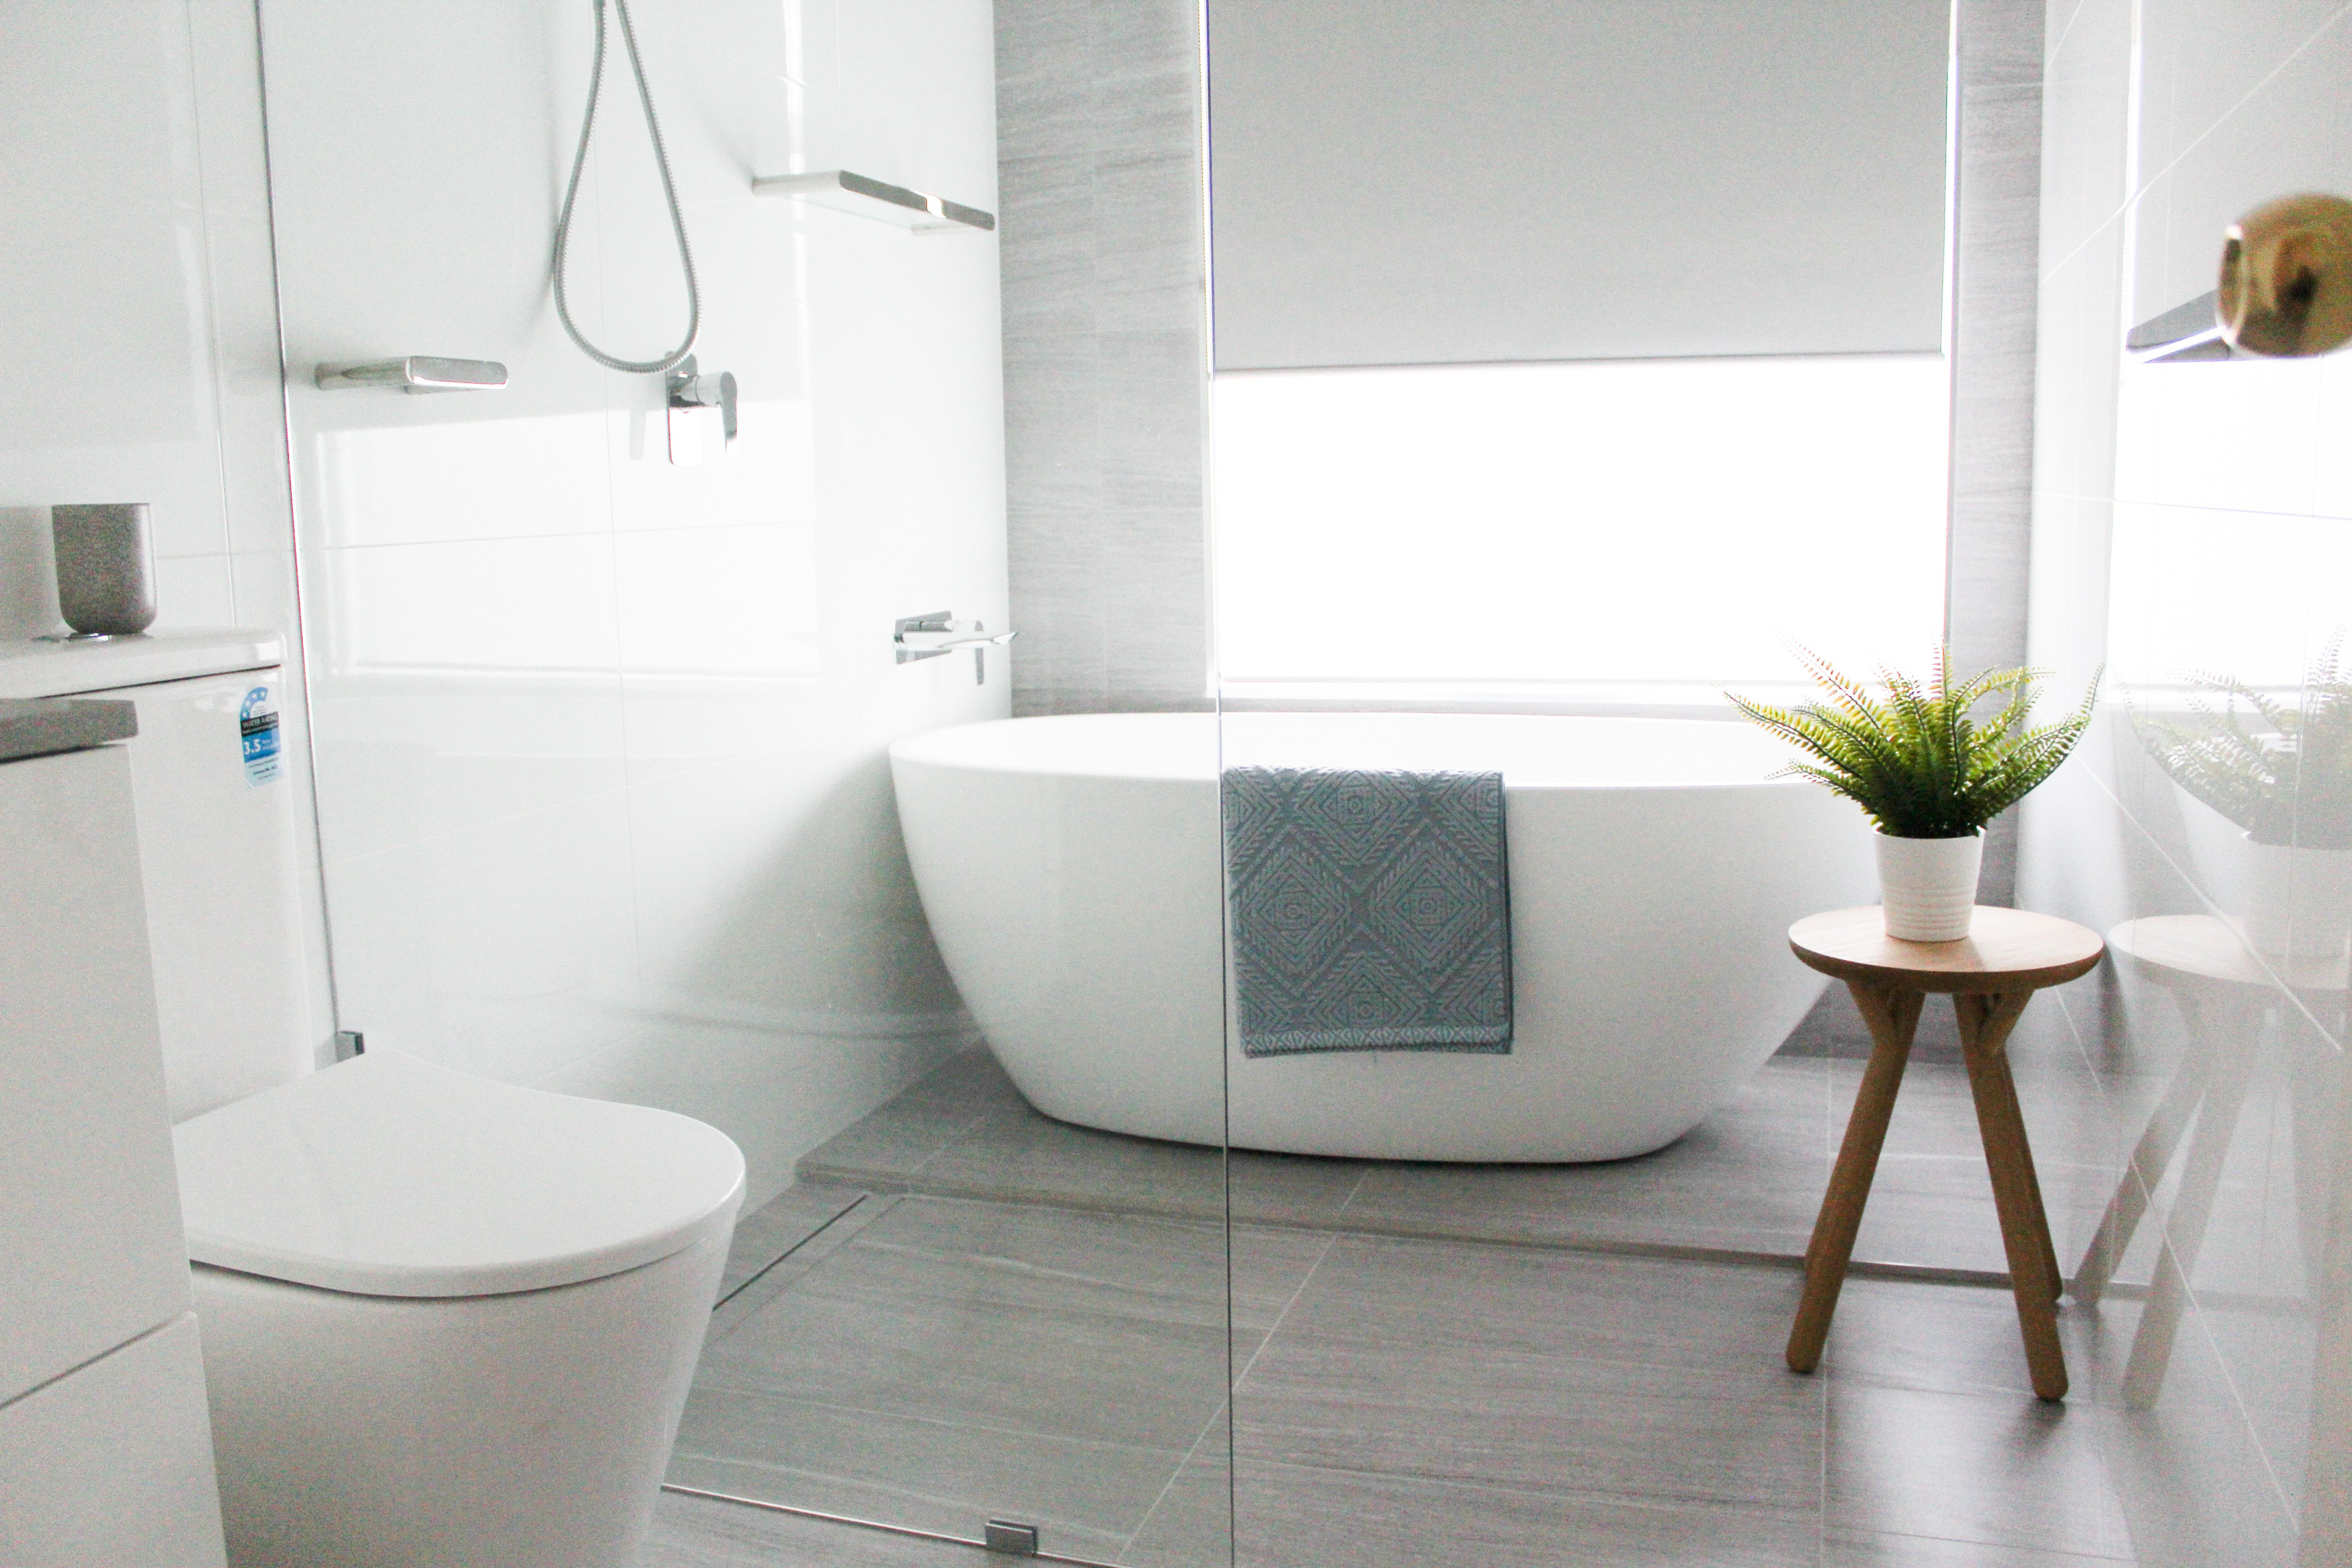 Walk In Shower On The Ball Bathrooms Freestanding Bath Wet Room Set Up Modern Bathroom Freestanding Freestanding Bath With Shower Bathroom Renovations Perth